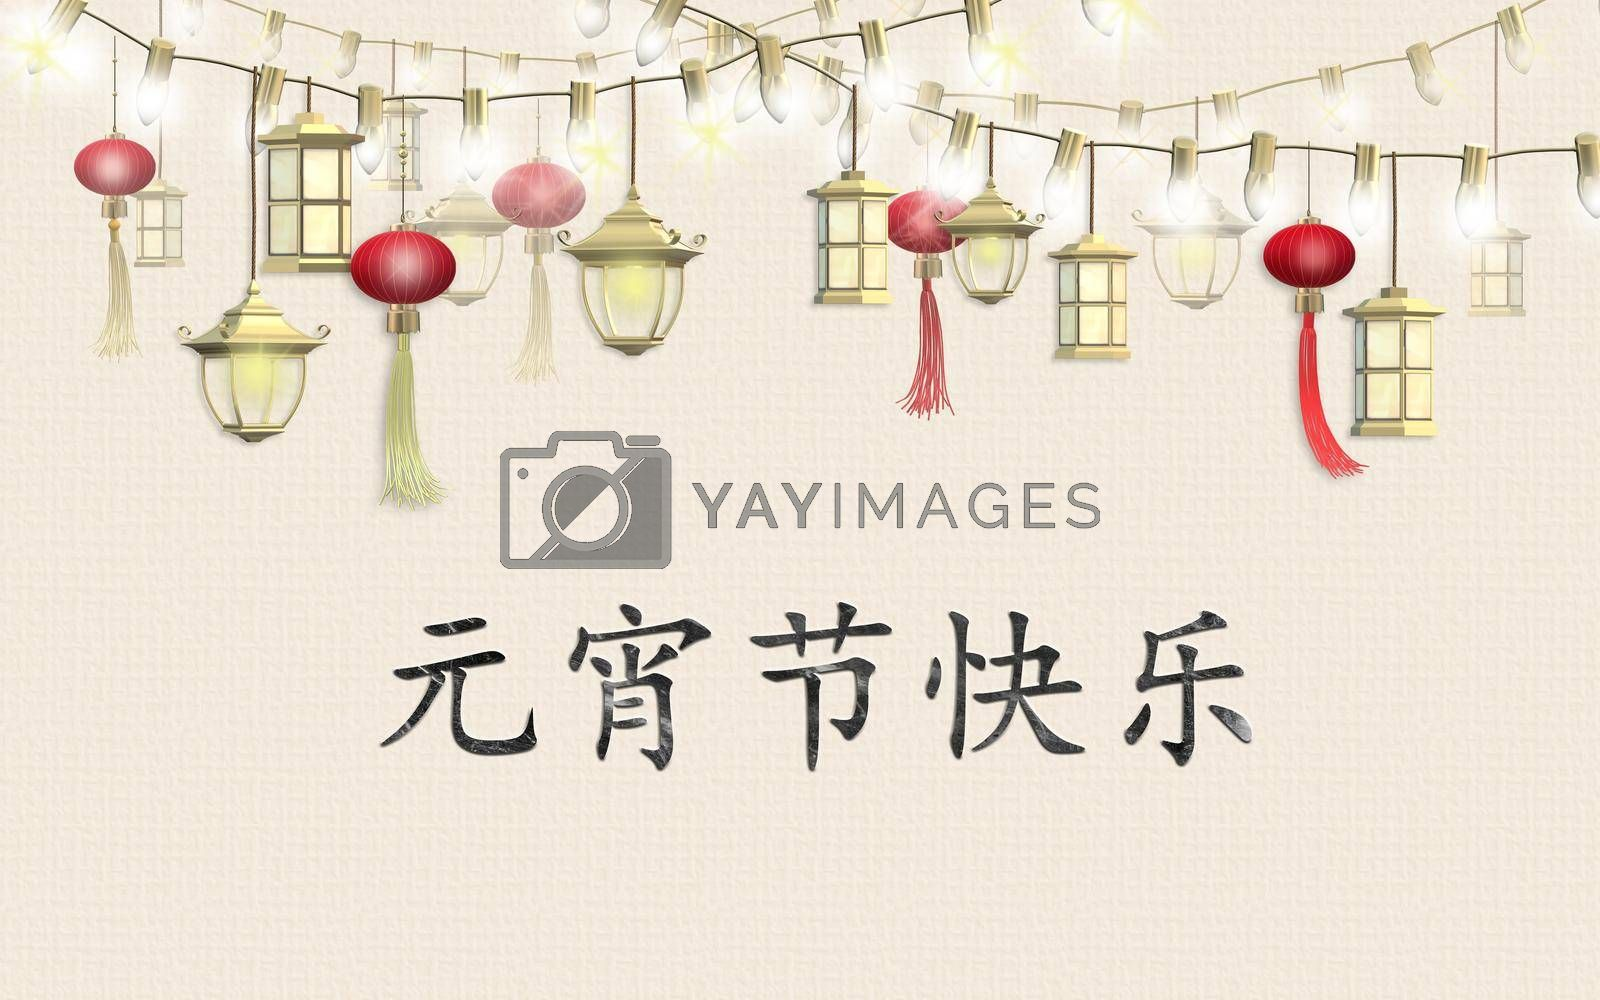 Lantern festival. Spring Chinese festival design. Chinese text Happy Lantern festival. Oriental Asian traditional lanterns on string of lights on pastel yellow background. Place for text, 3D render